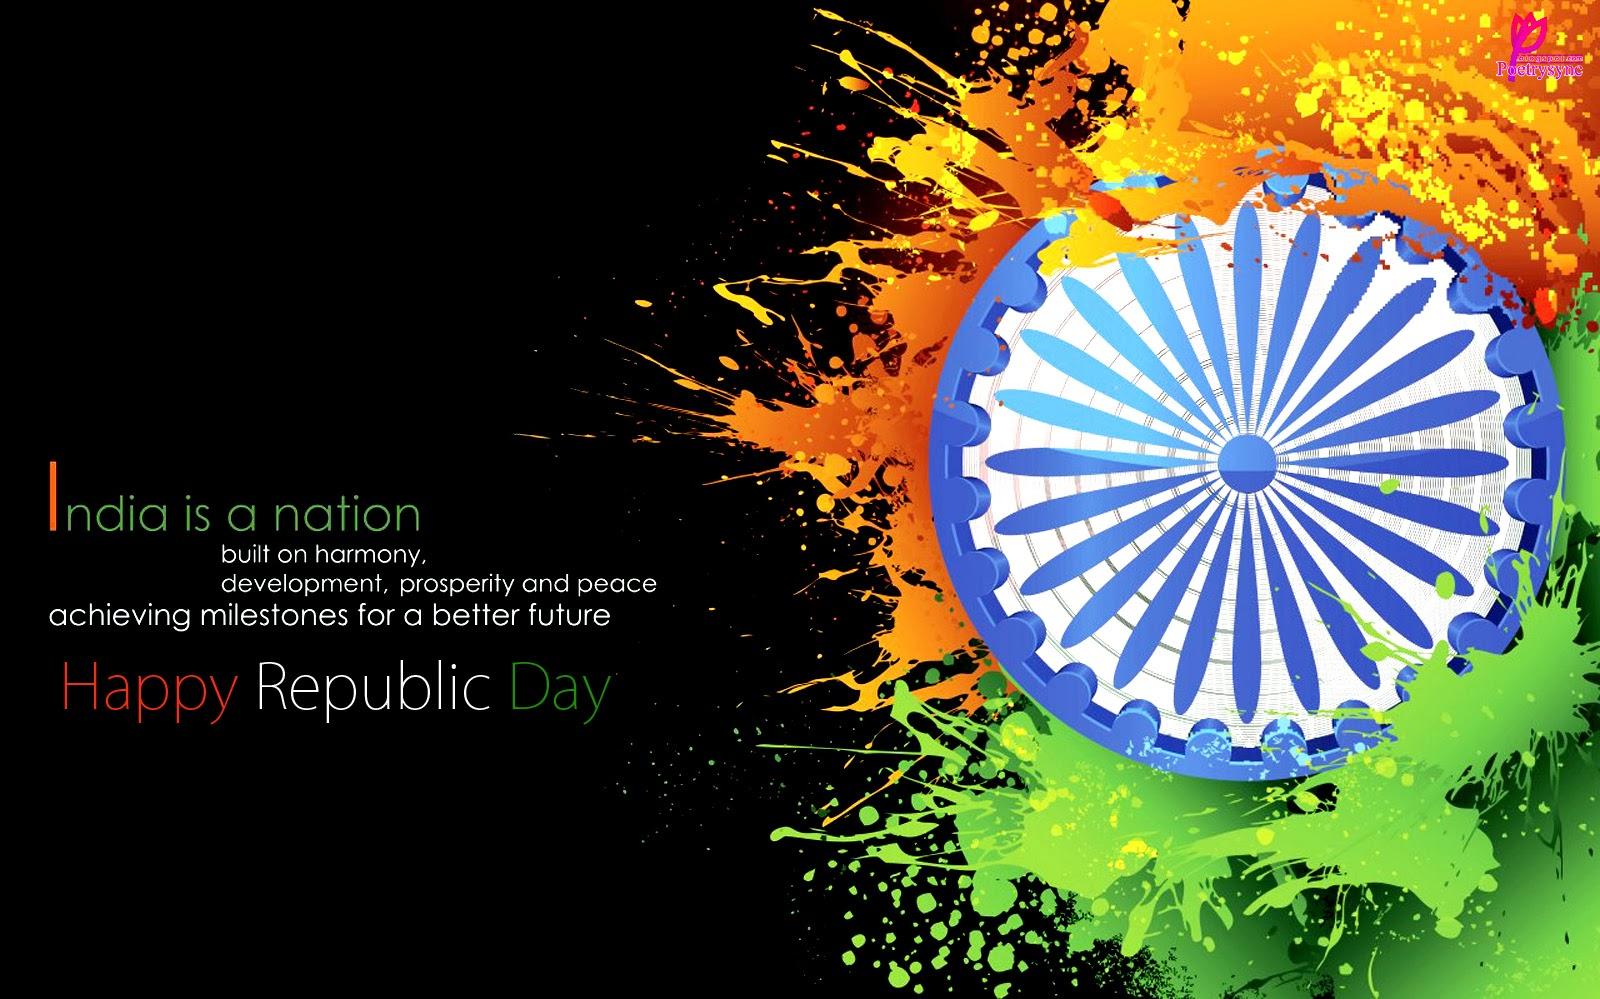 THE IMAGES OF REPUBLIC DAY 2016 EBOOK